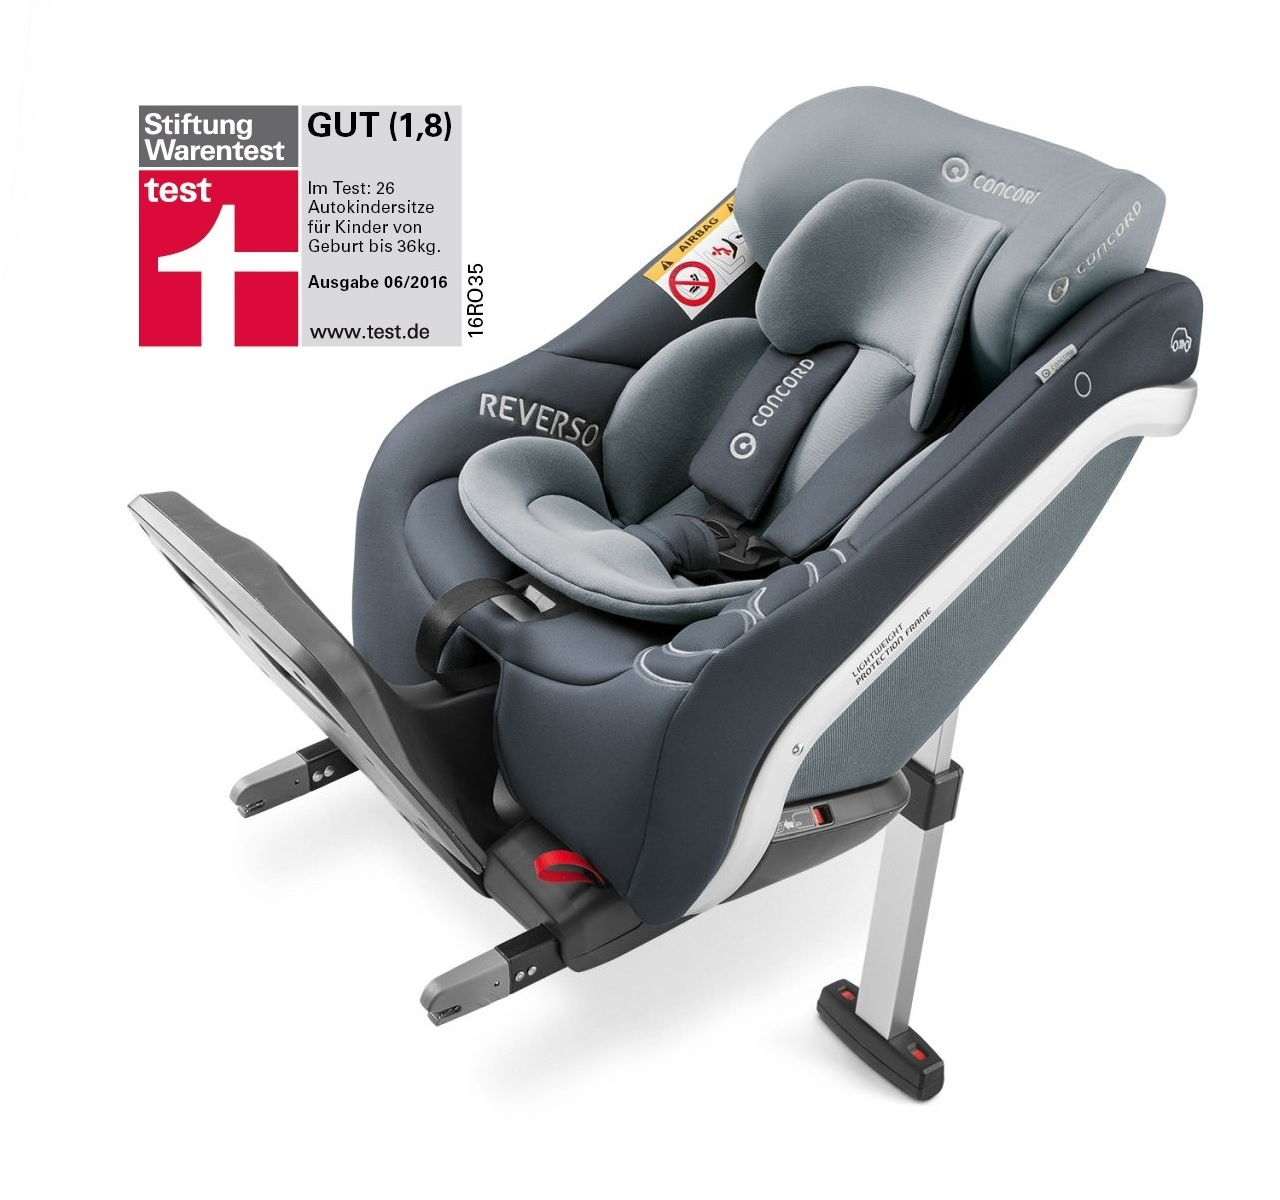 Concord baby car seats: model overview, features and reviews 8